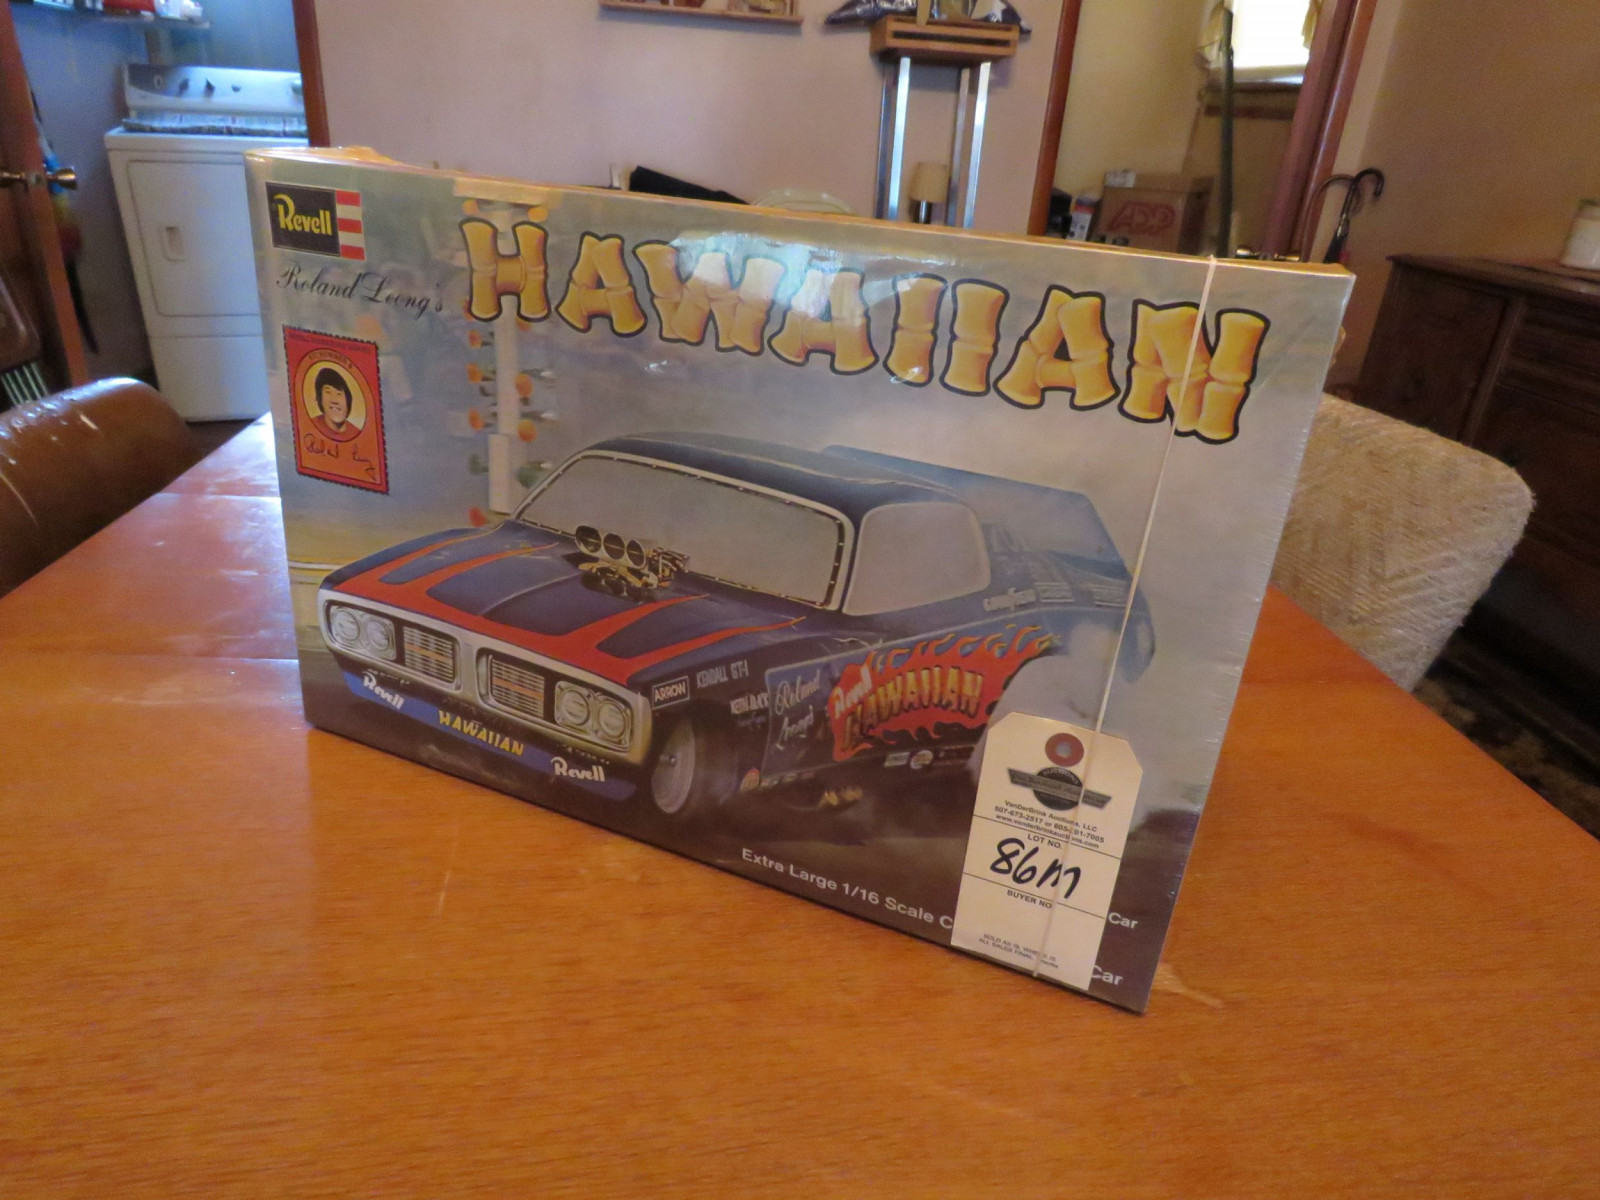 1996 Revell NIB 1/16 Scale Model - Roland Leong's The Hawaiian Drag Car - Image 2